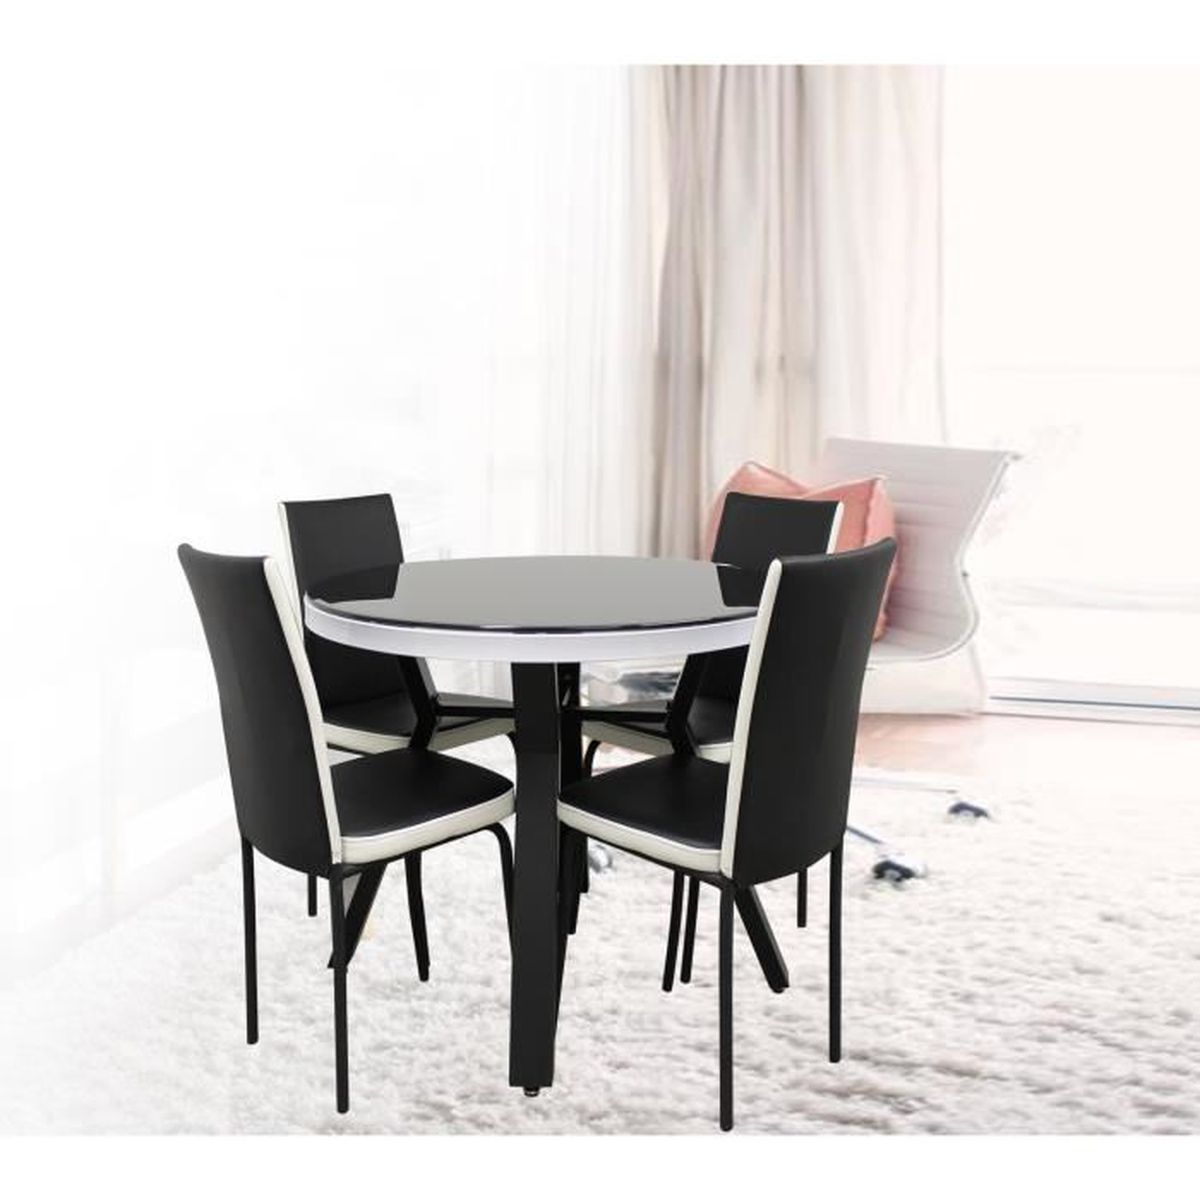 table avec chaise achat vente table de cuisine table avec chaise cdiscount. Black Bedroom Furniture Sets. Home Design Ideas